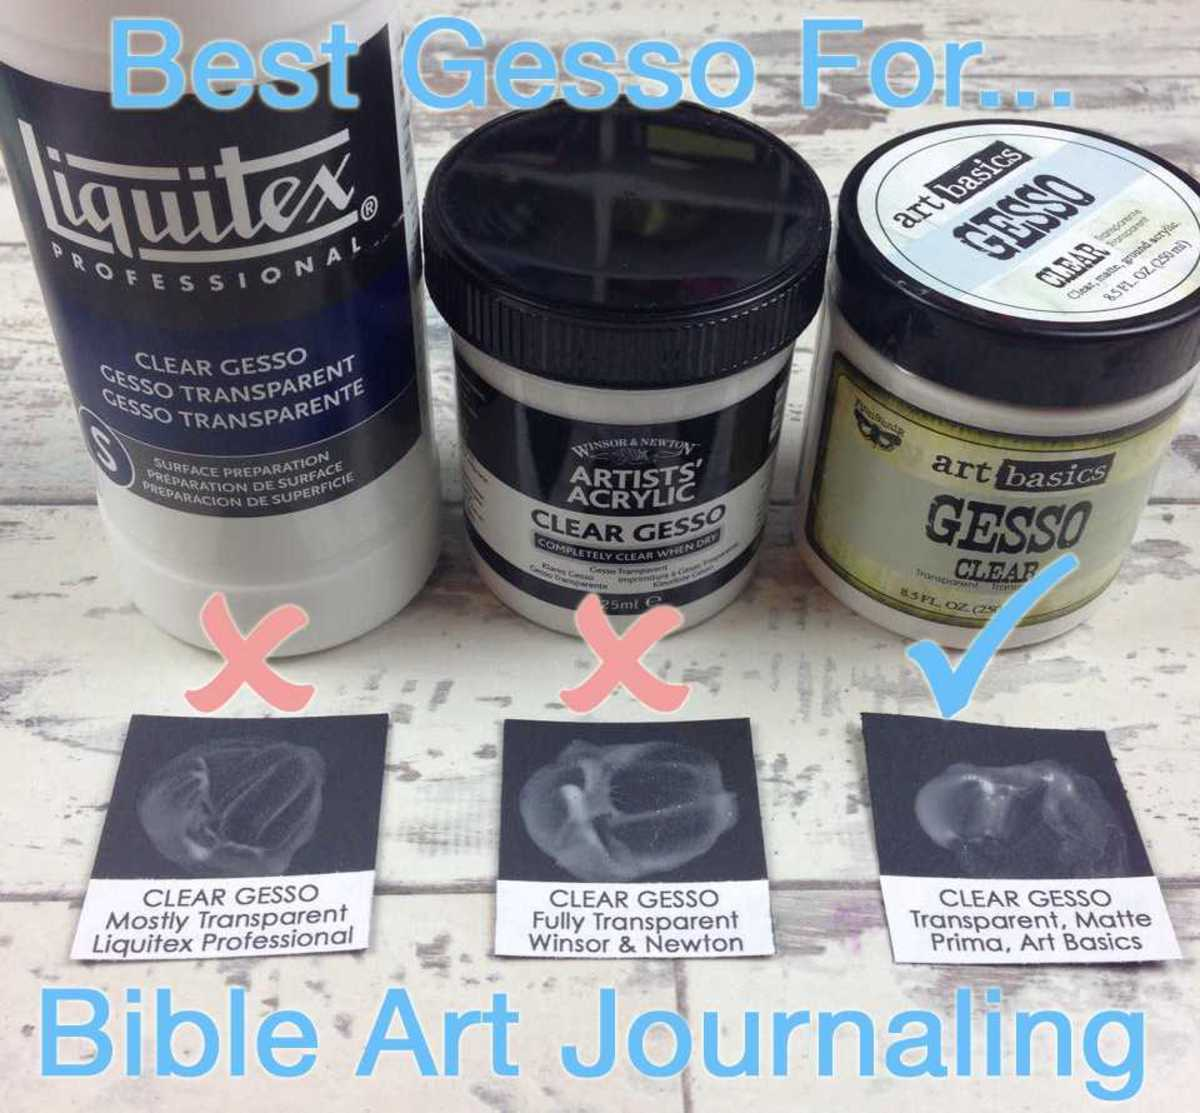 It is important to choose the right gesso for your Bible journaling